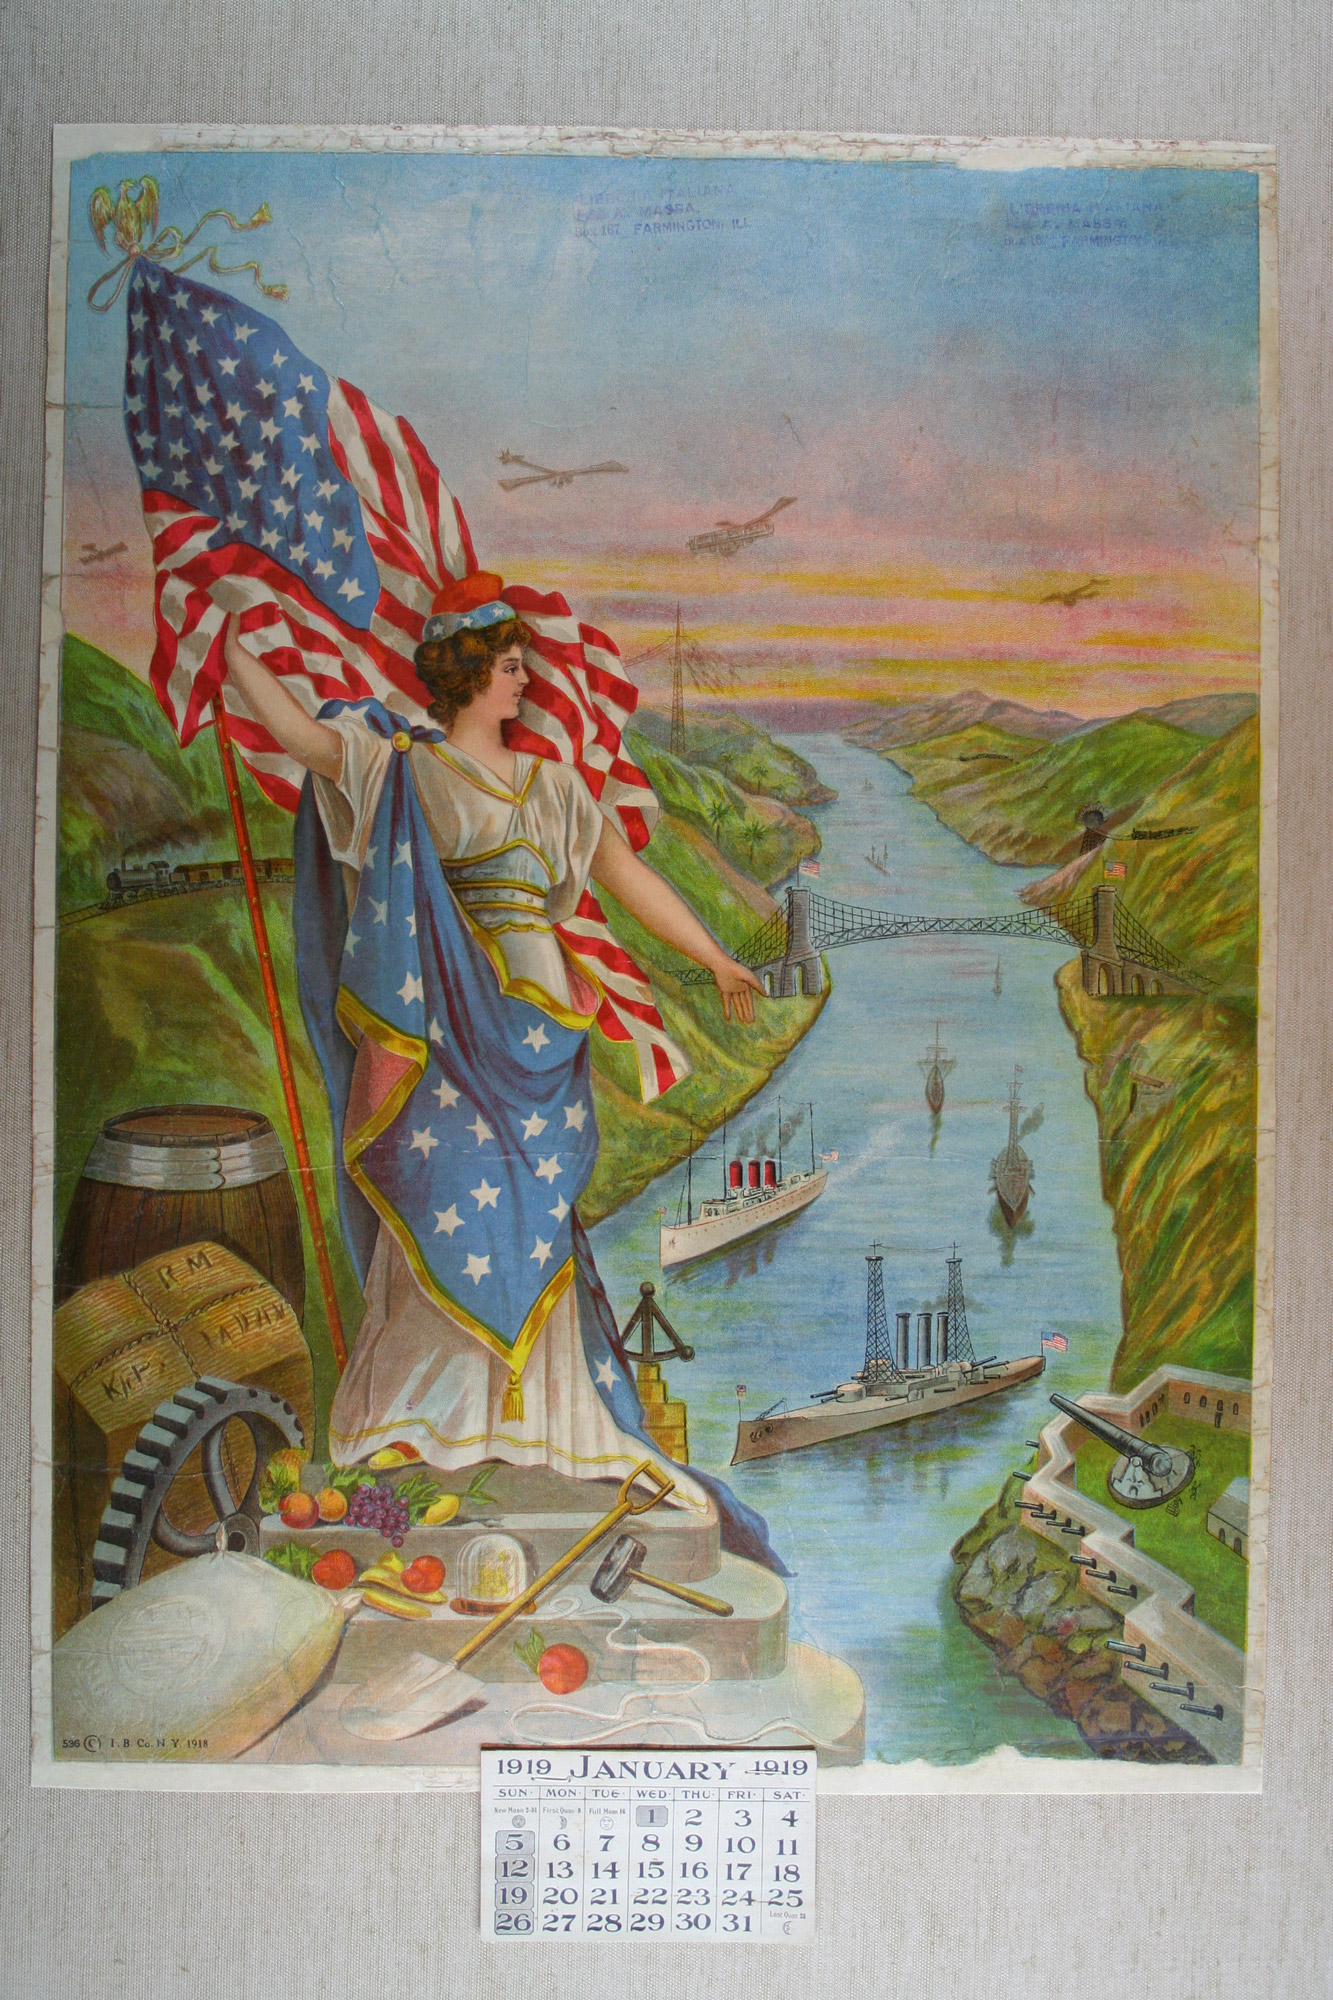 Allegory of the United States of America